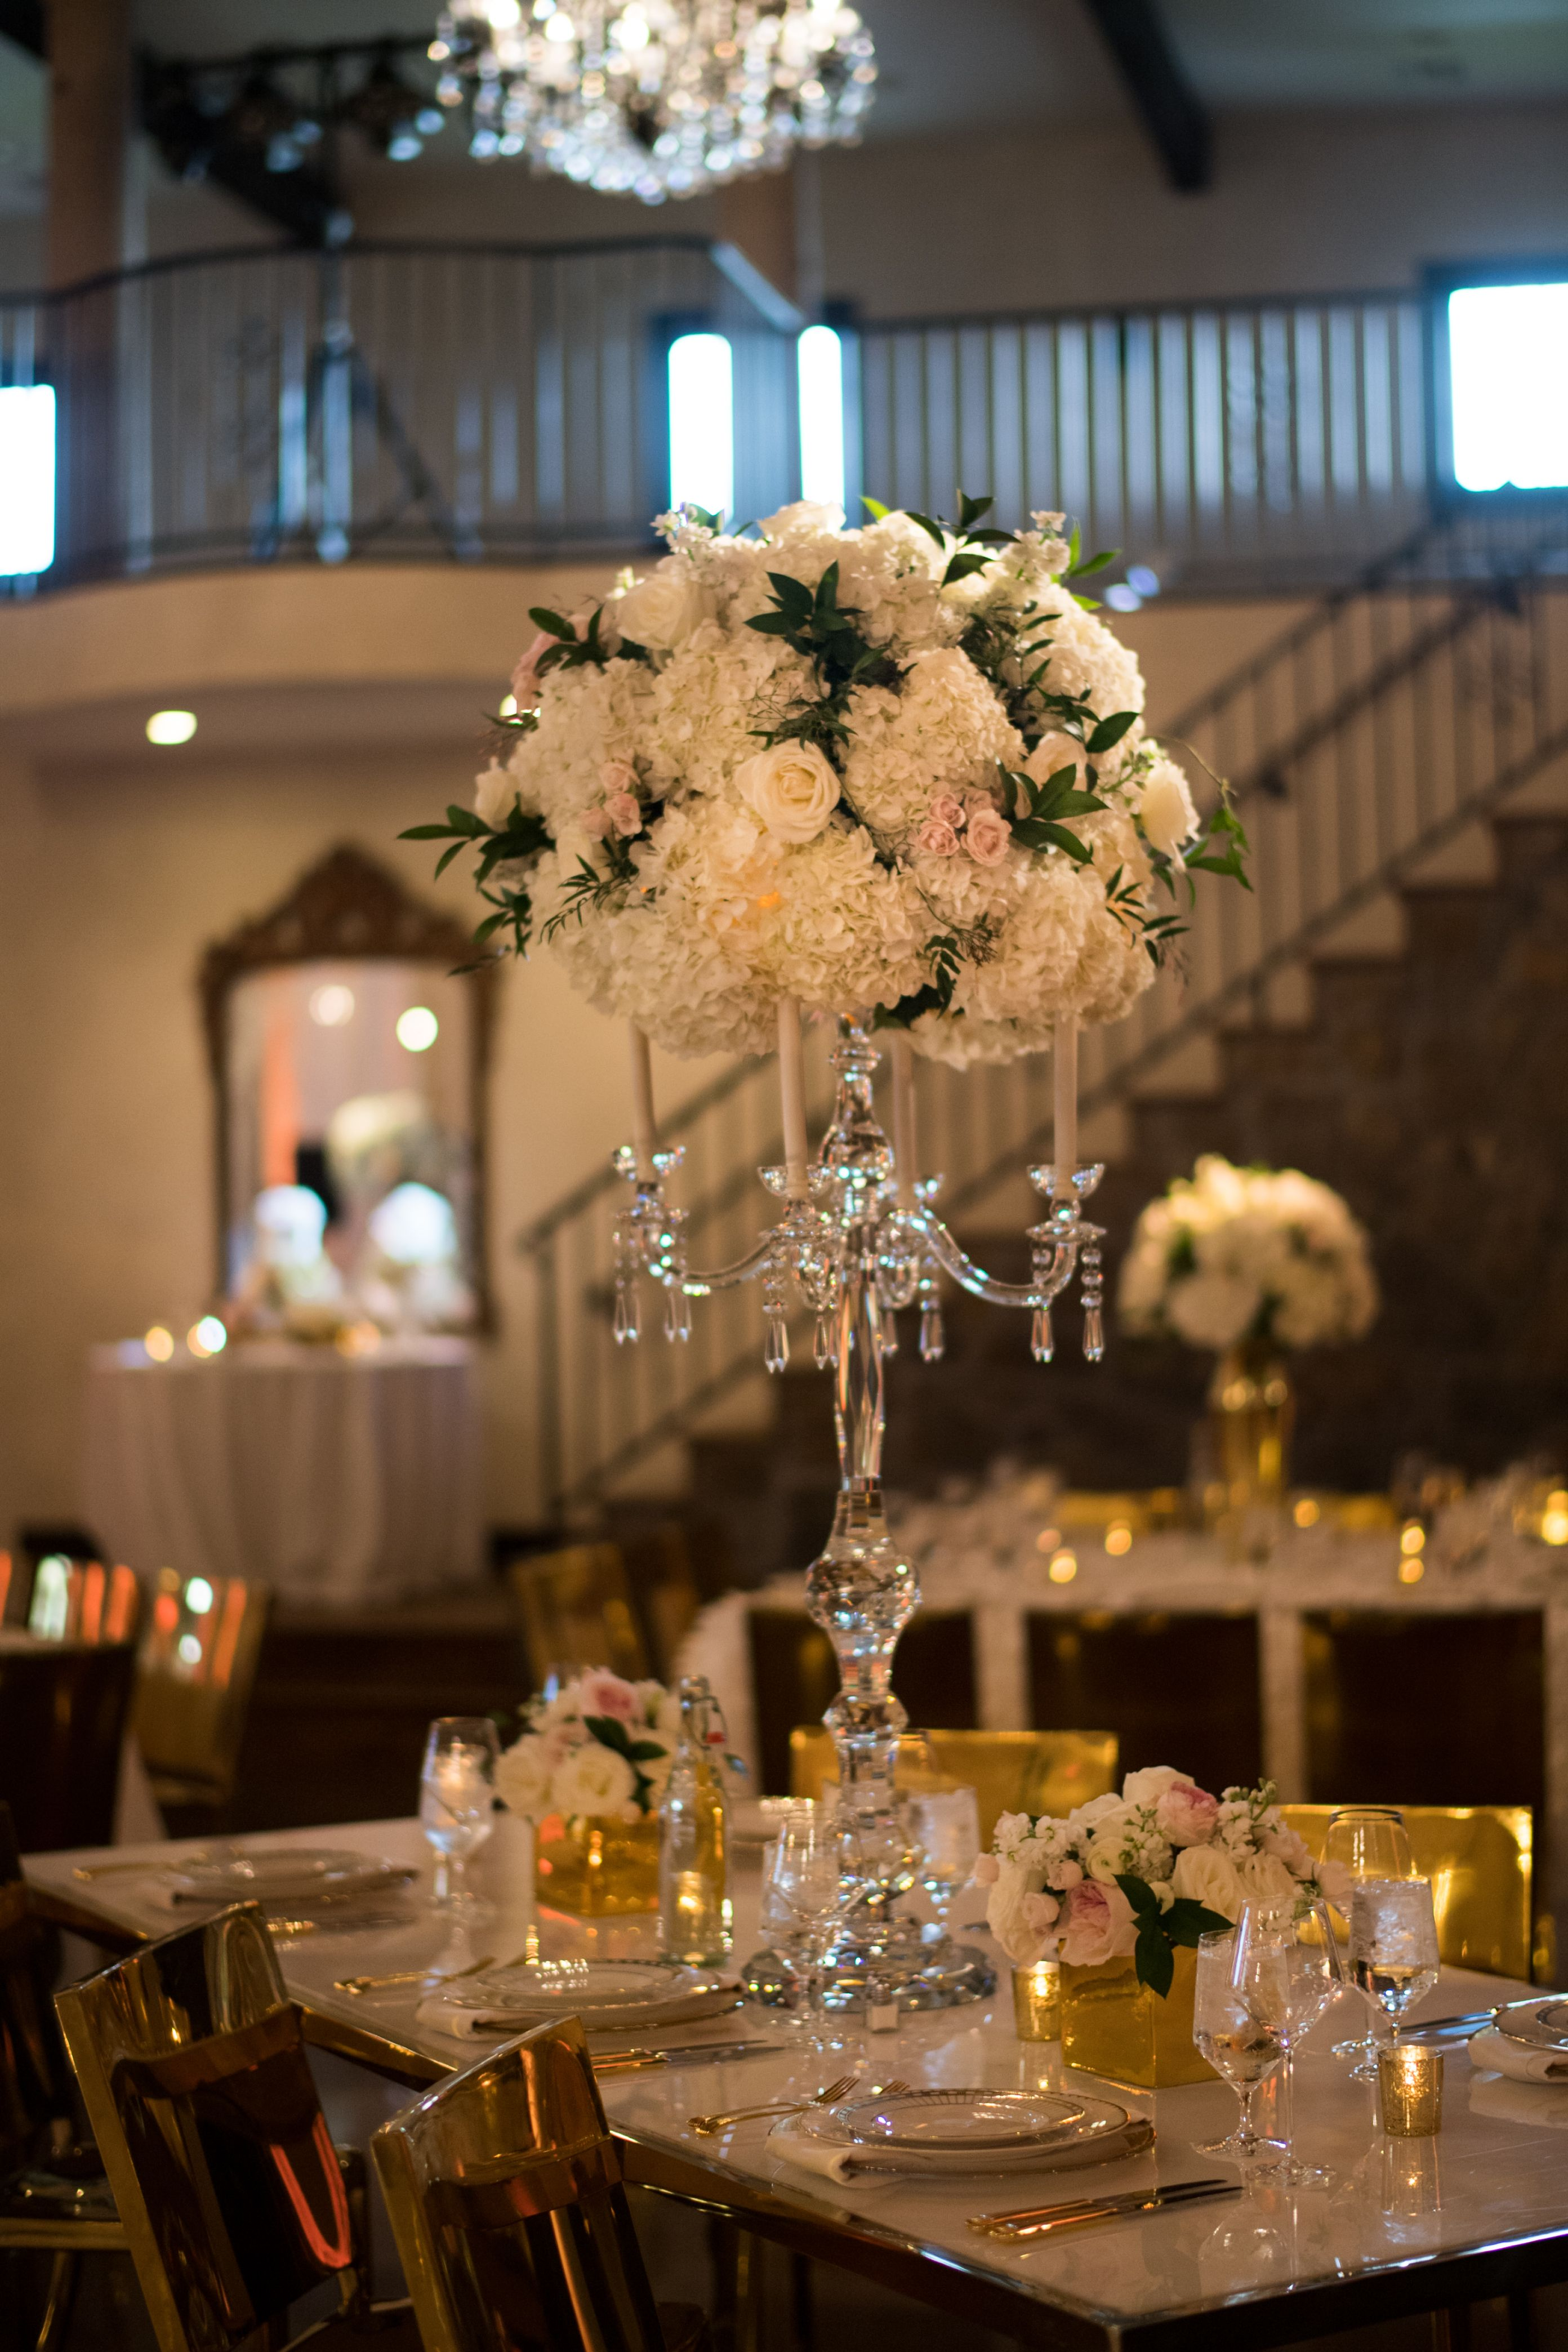 Gorgeous Table Setting With A Large Arrangement In A Crystal Candle Arbra Florafetish Tablesetting Centerpiece Crystal Candles Table Settings Centerpieces